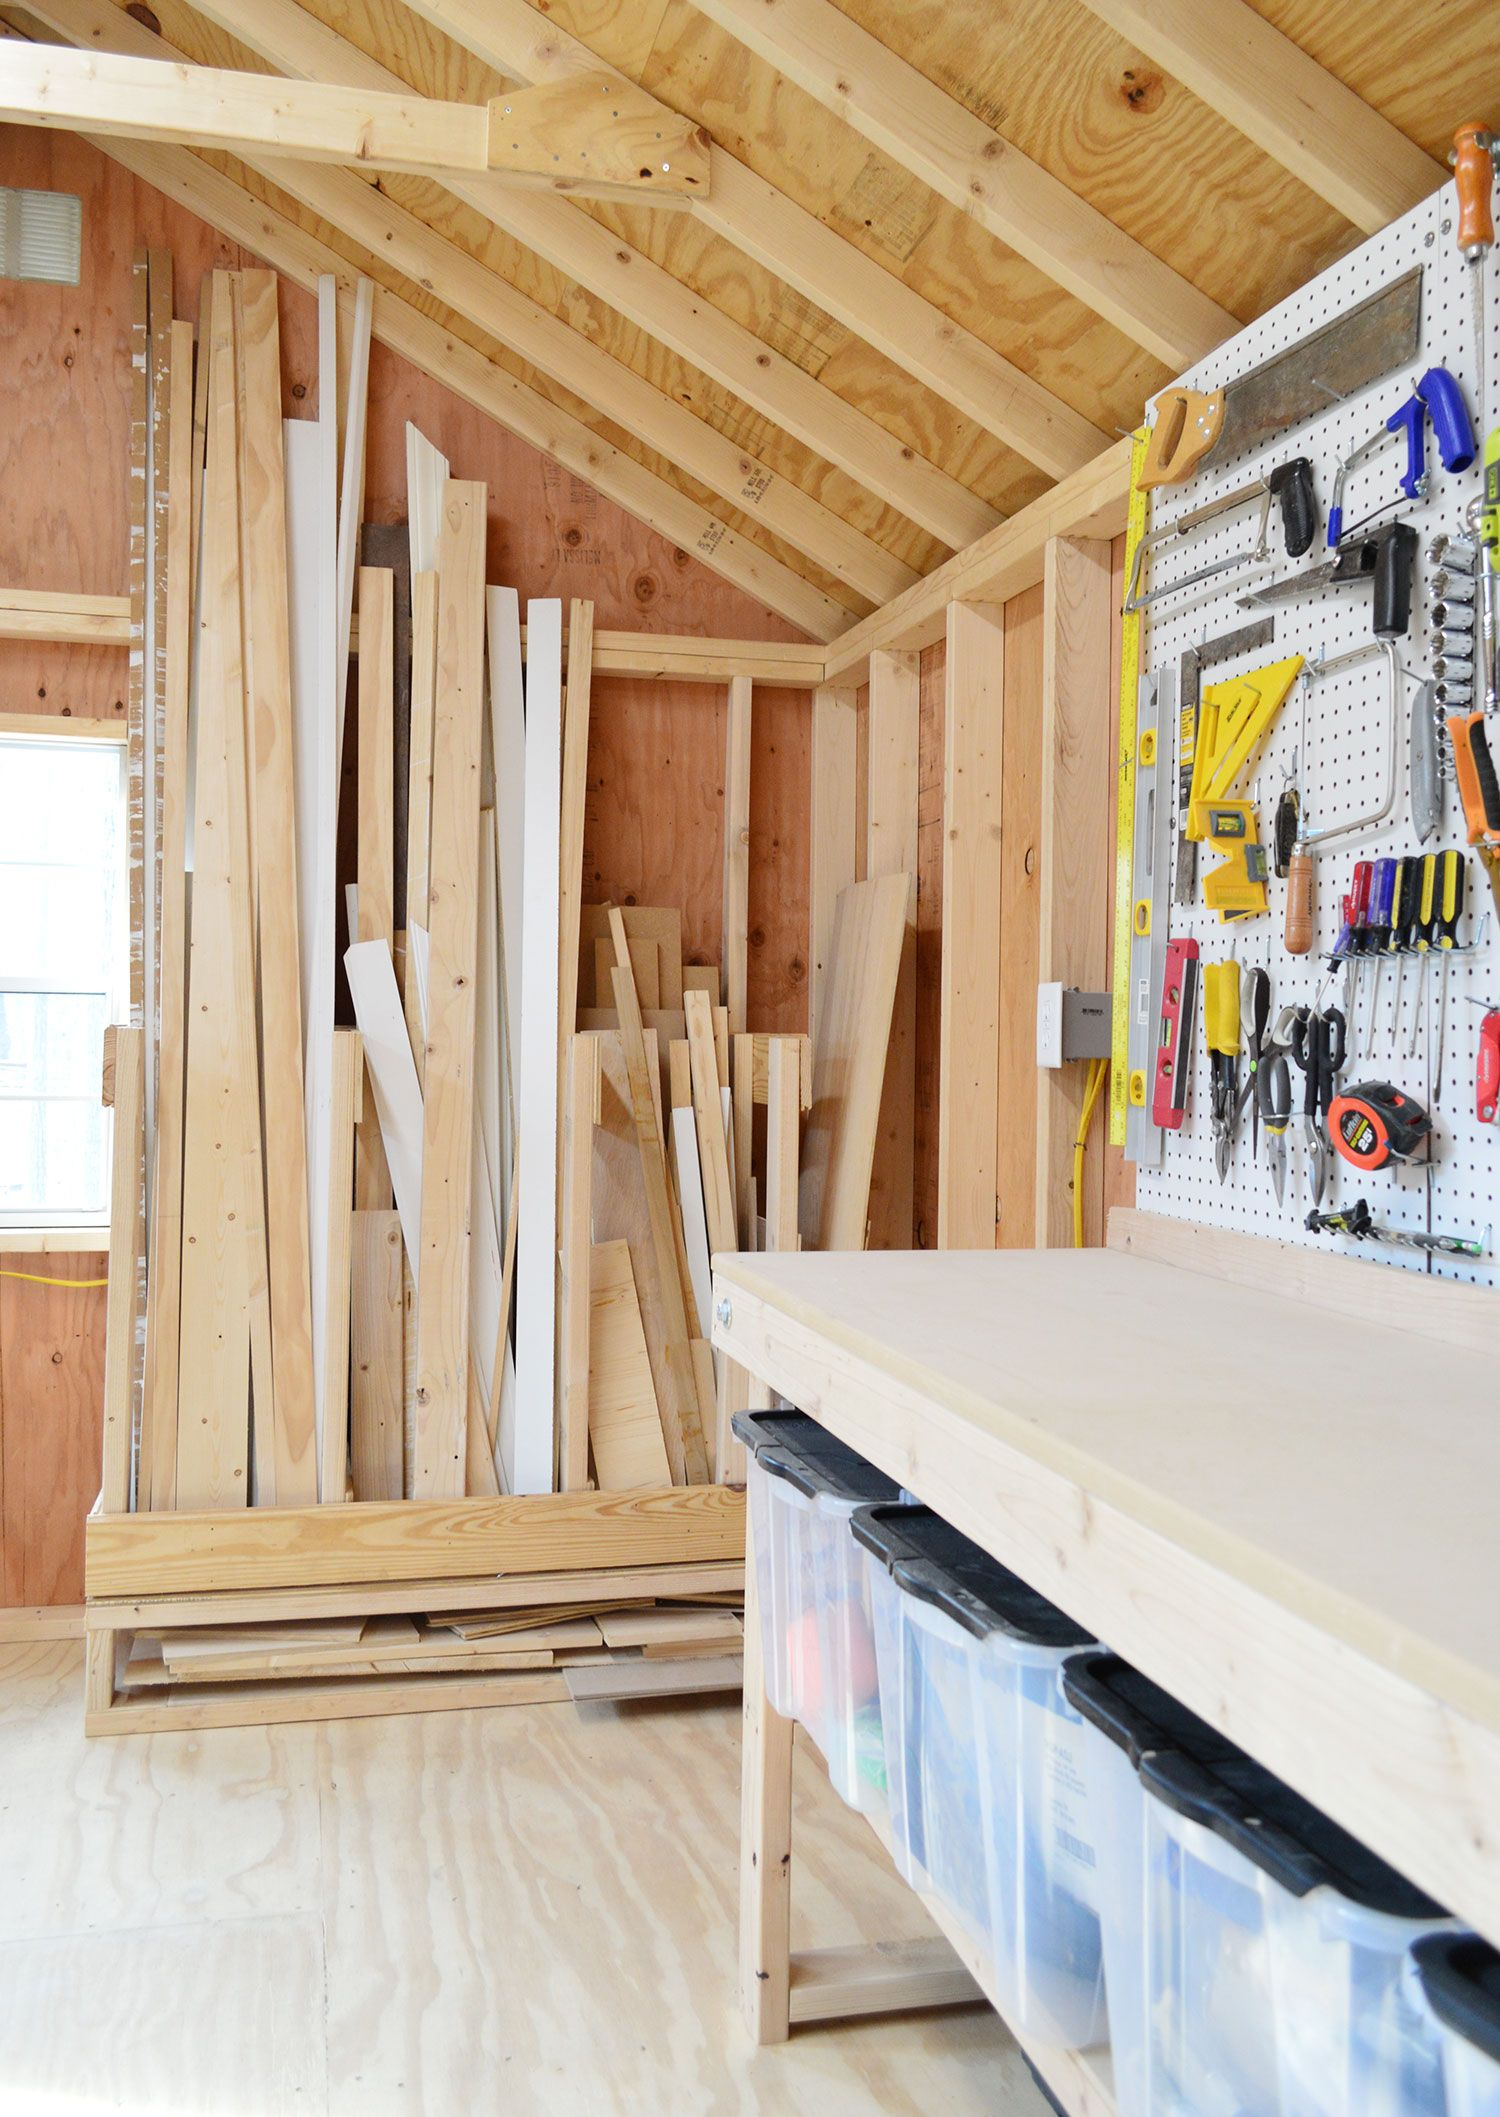 4 Shed Storage Ideas For Tons Of Added Function | DIY Ideas | Diy